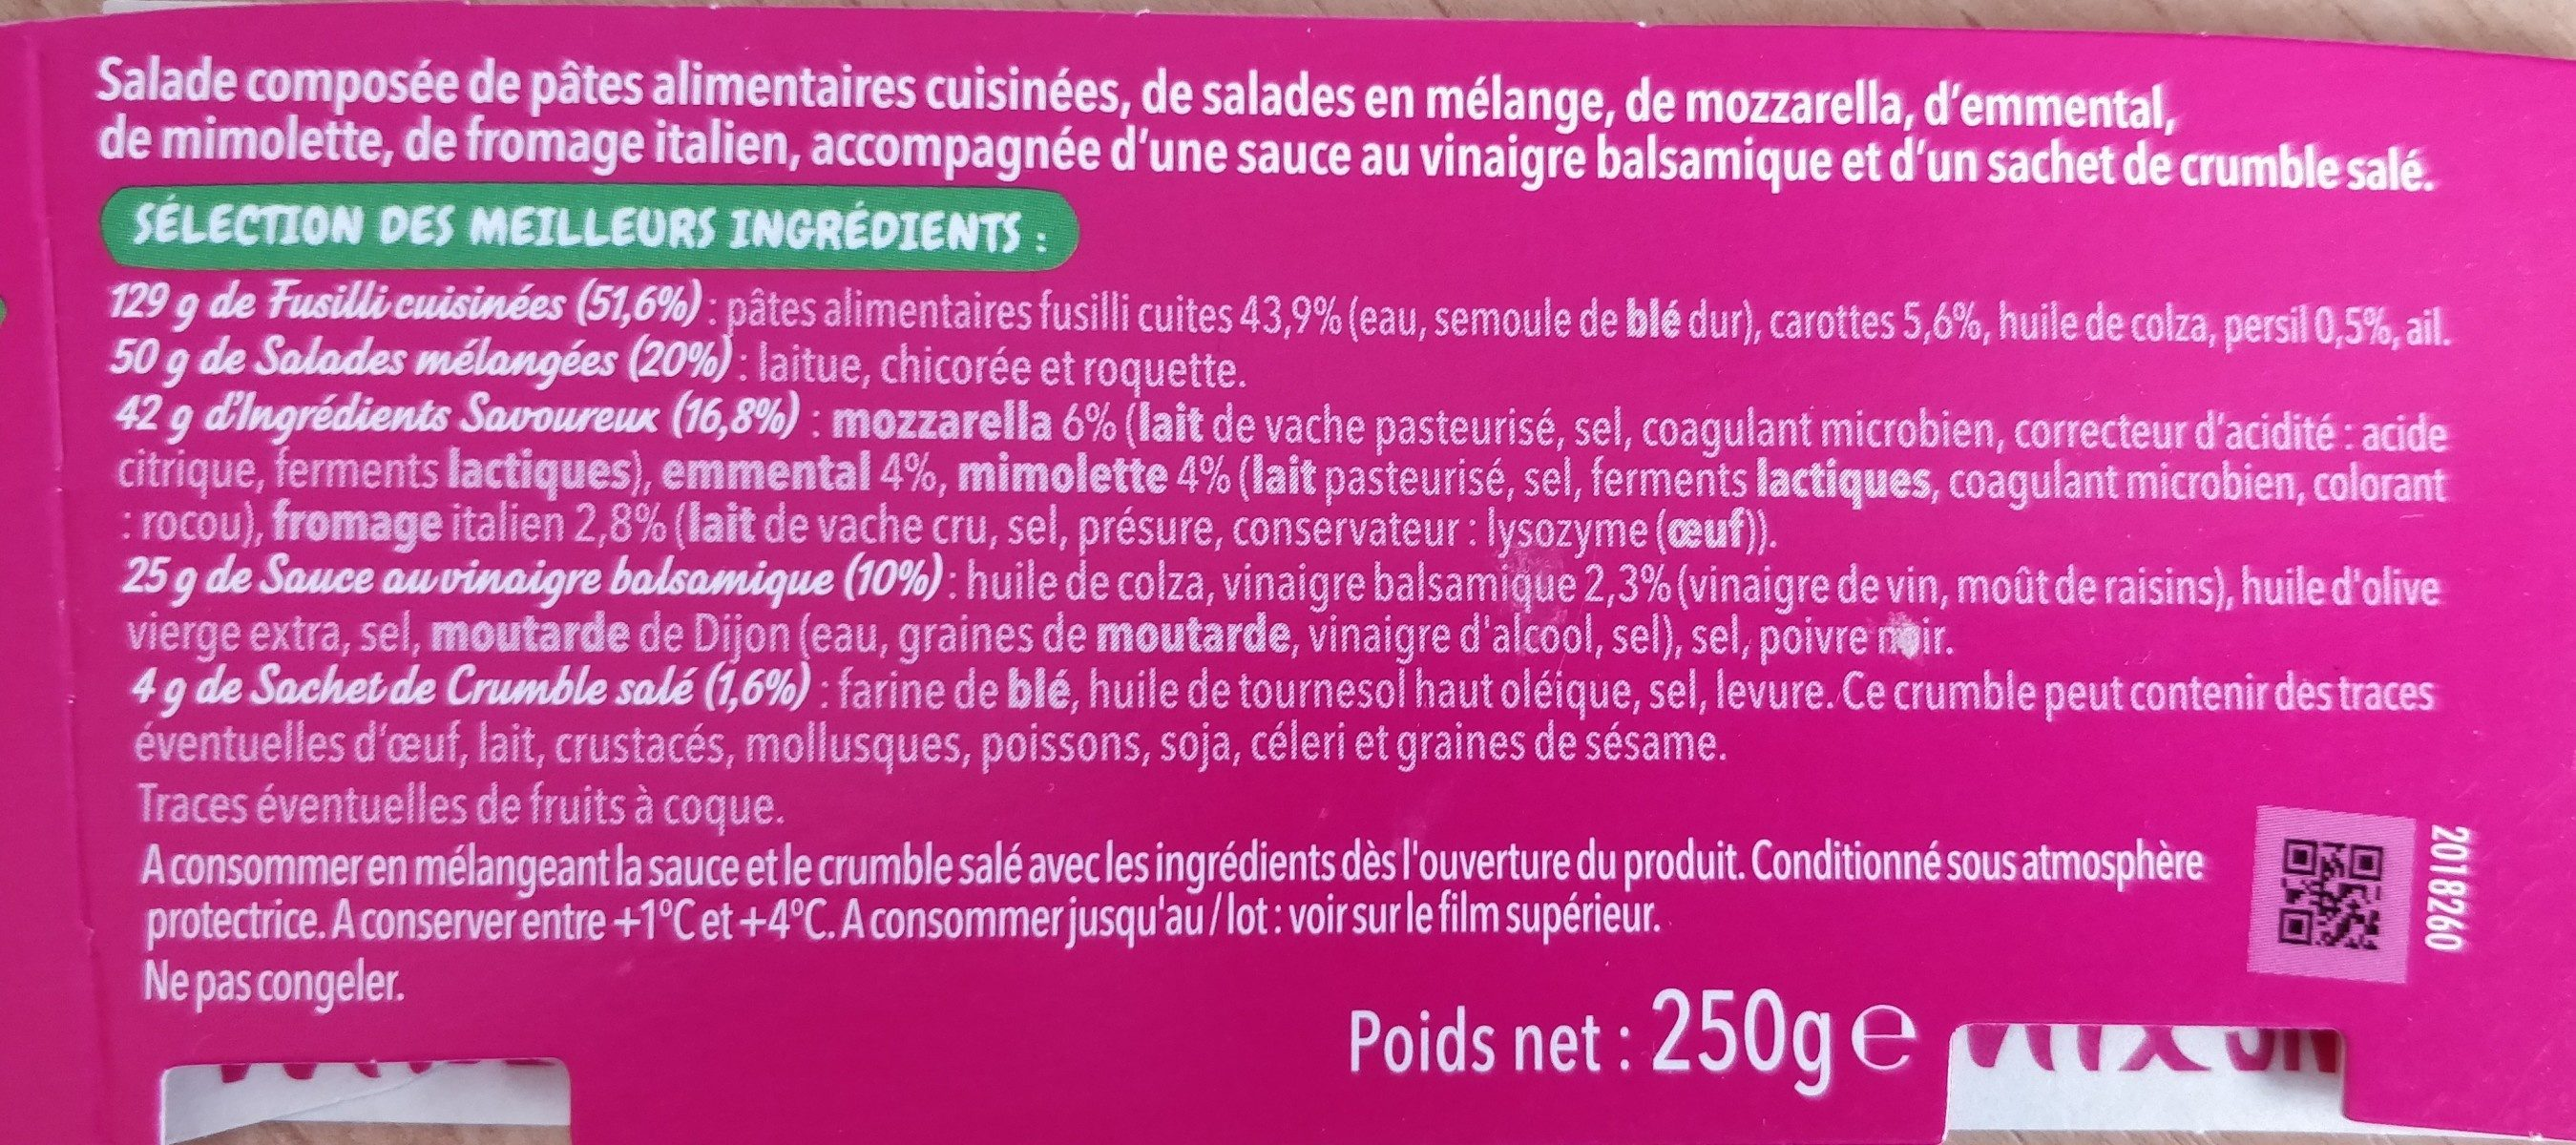 Salade et fusilli 4 fromages - Ingredients